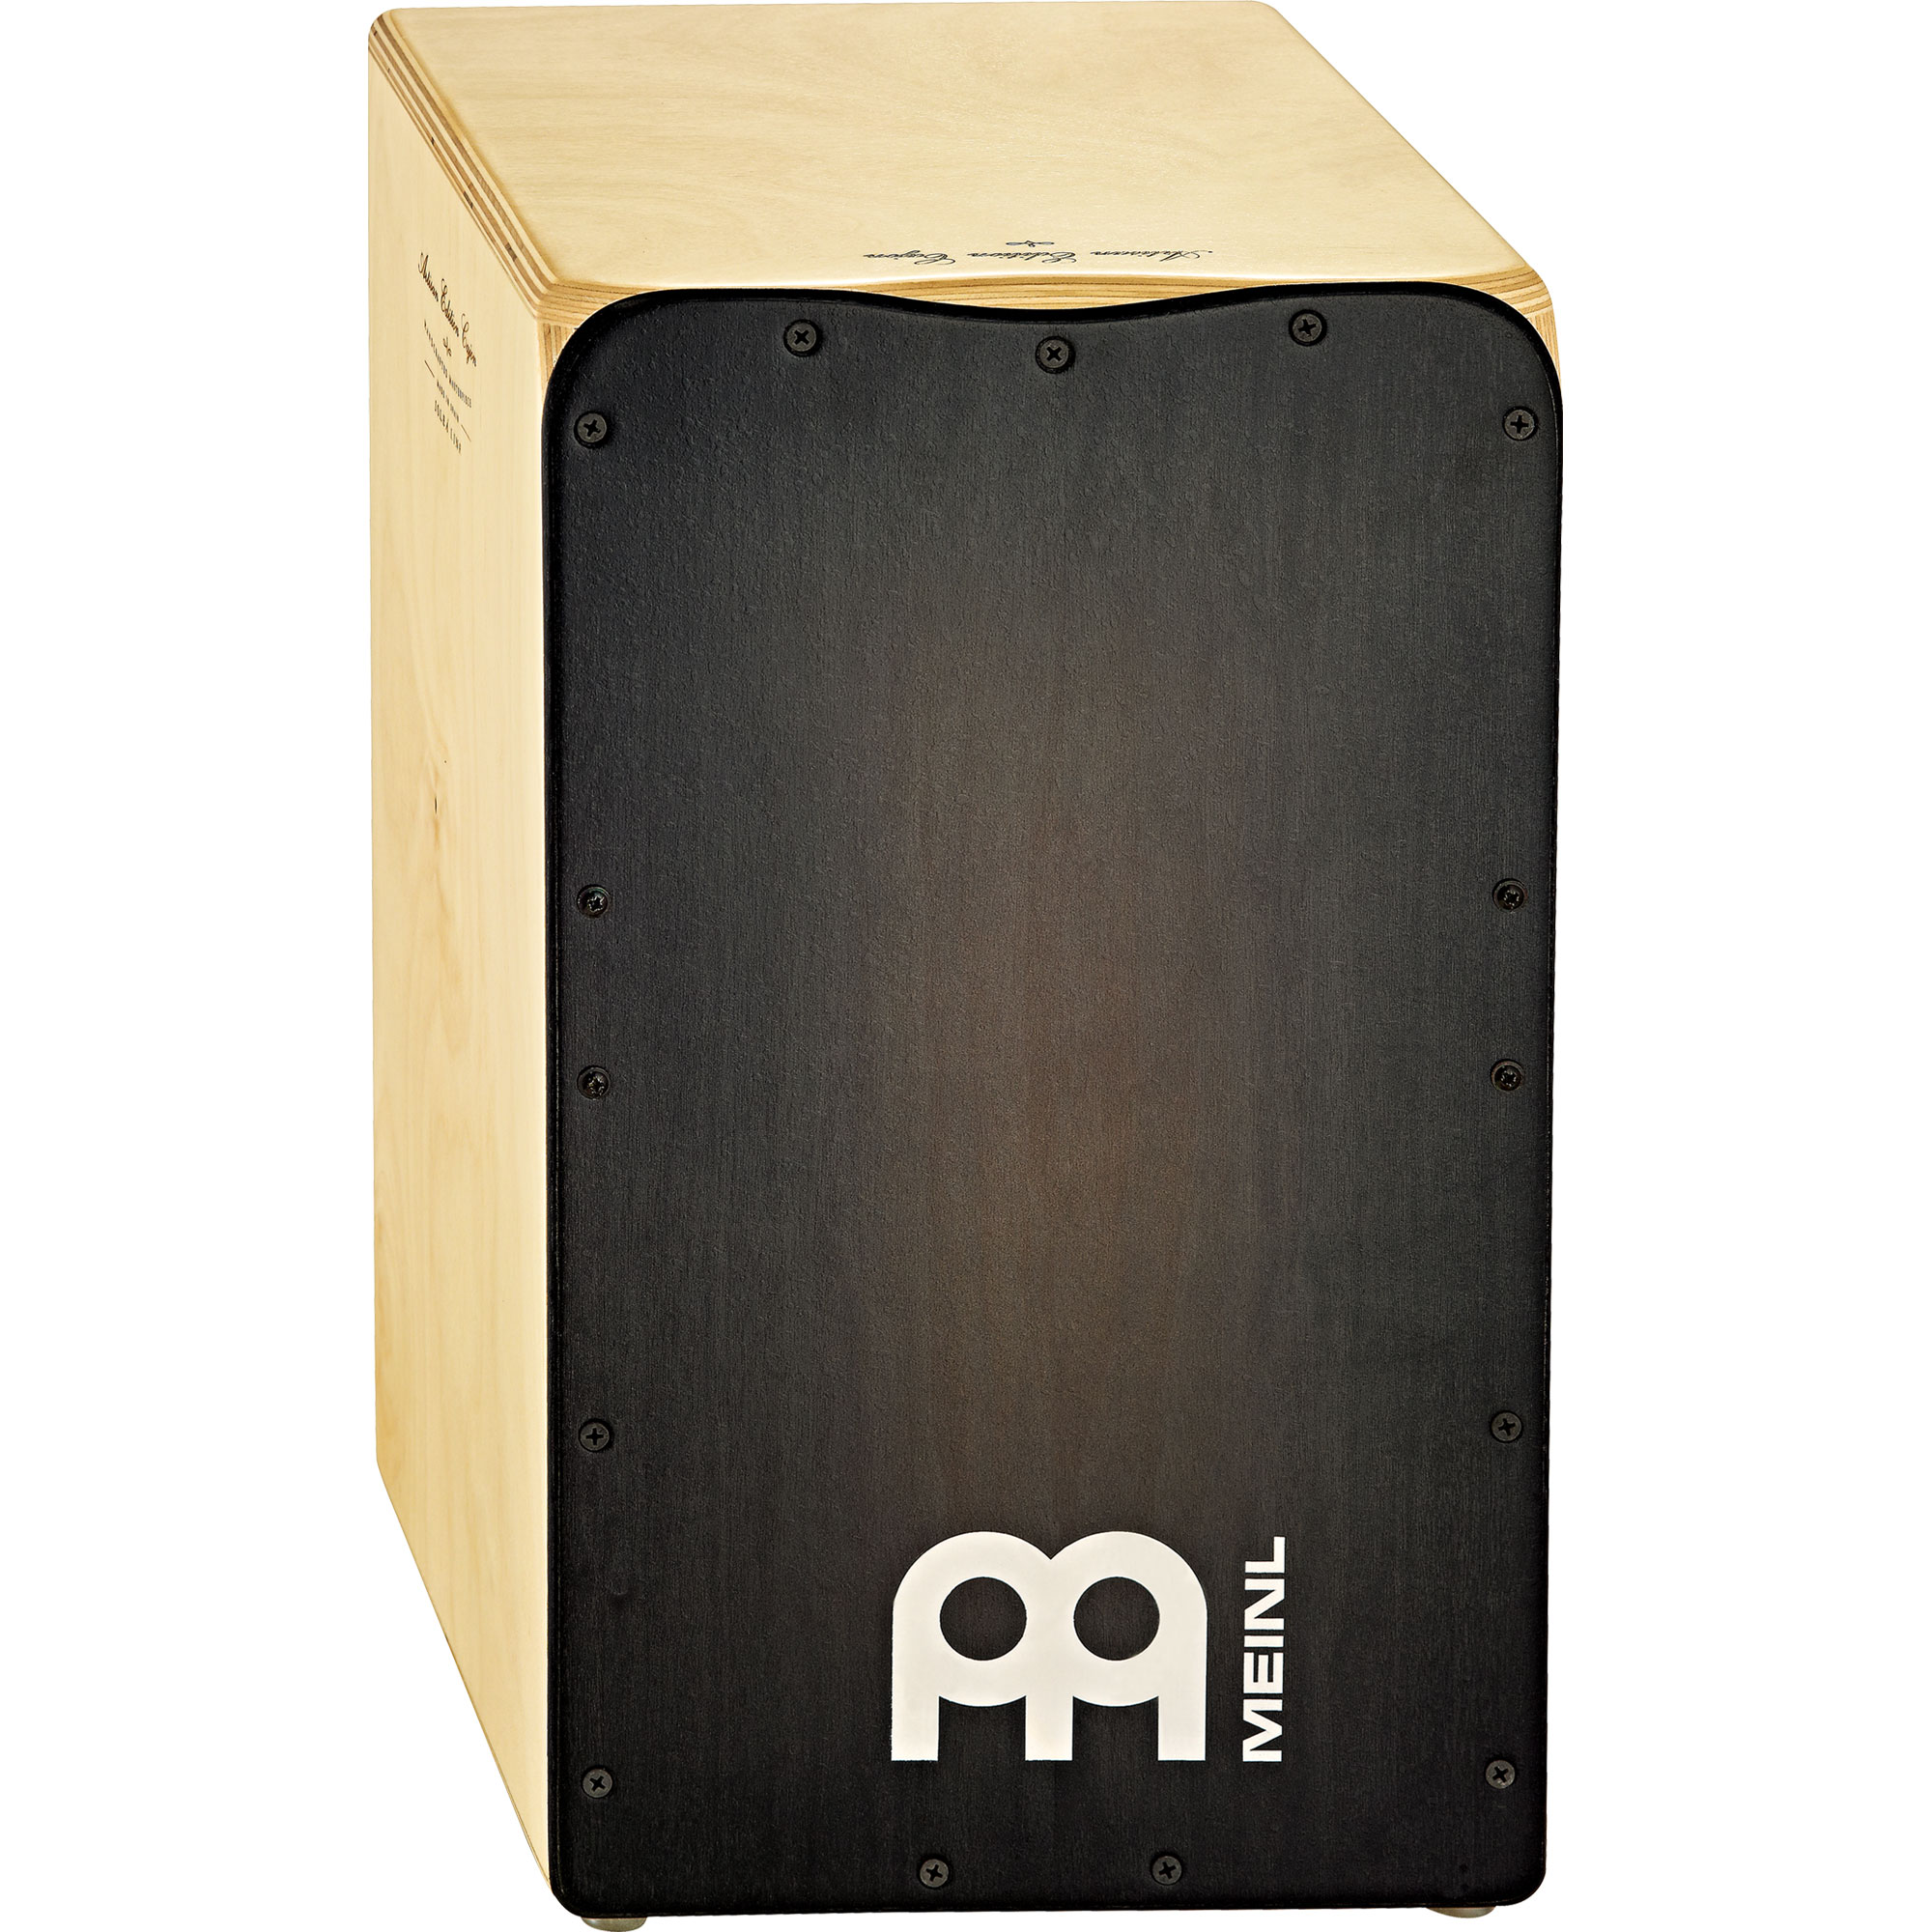 Meinl Solea Artisan Edition Flamenco Cajon with Cedar in Ebony Burst Frontplate